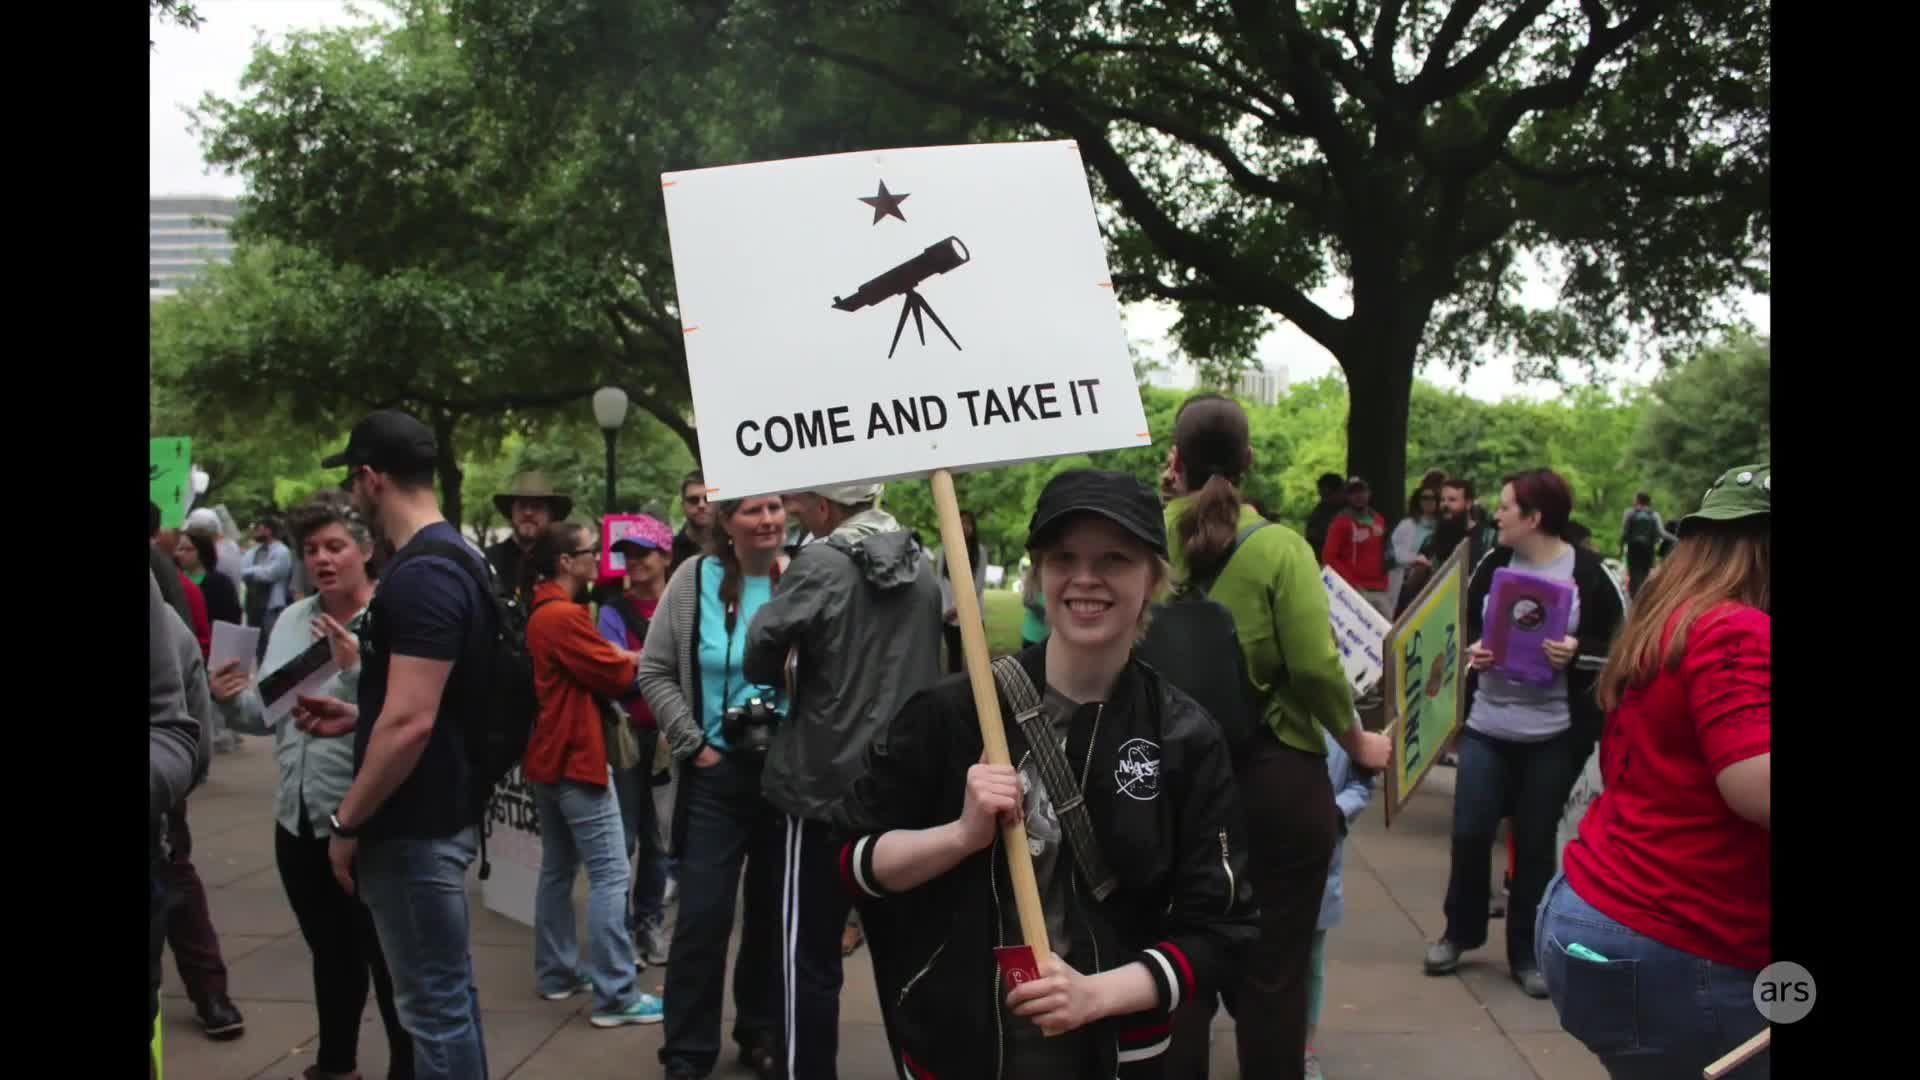 Scenes from the Science March - Austin, TX | Ars Technica